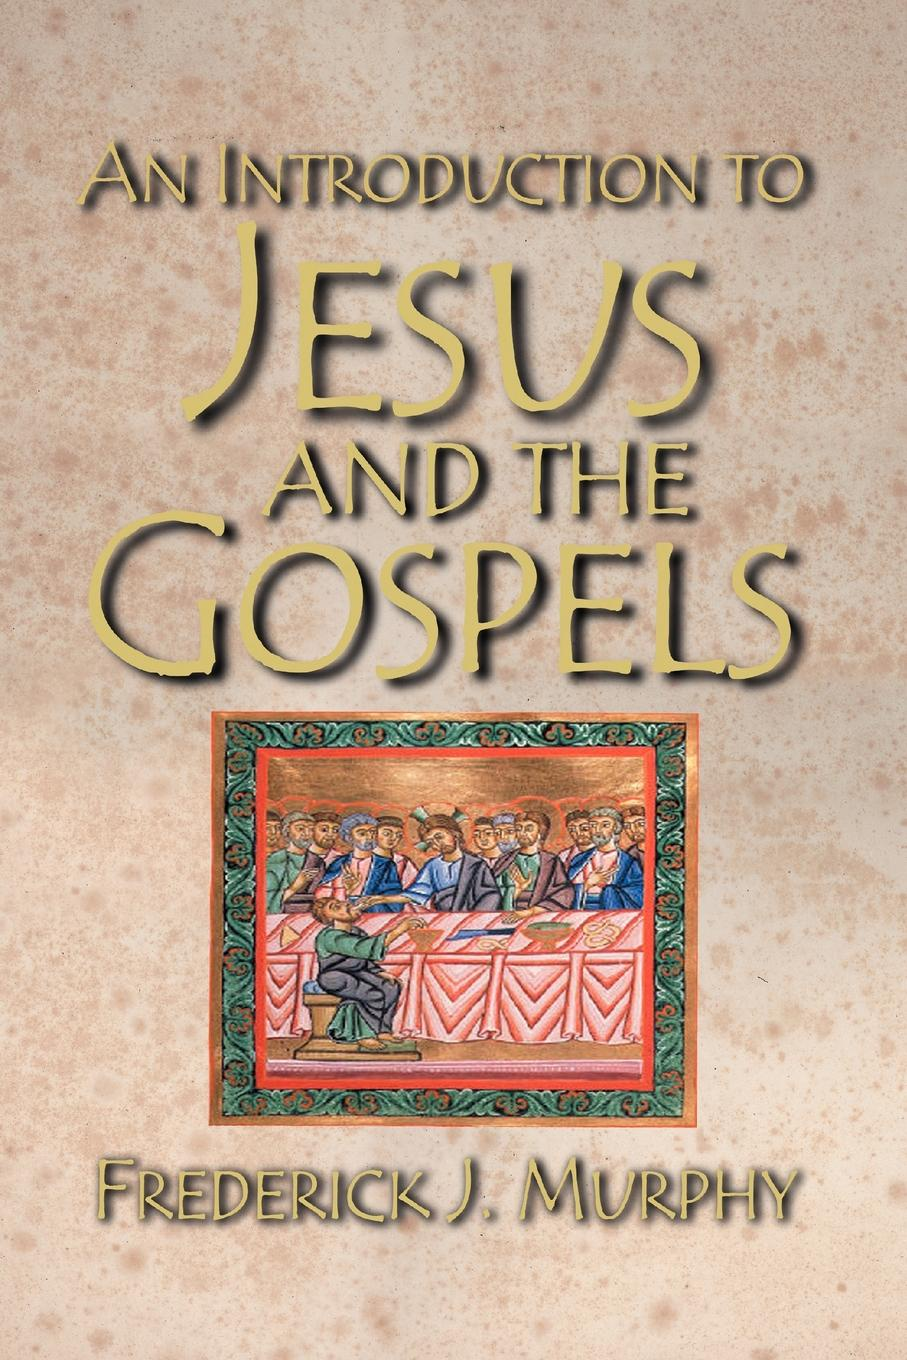 Frederick J. Murphy An Introduction to Jesus and the Gospels frederick j murphy an introduction to jesus and the gospels